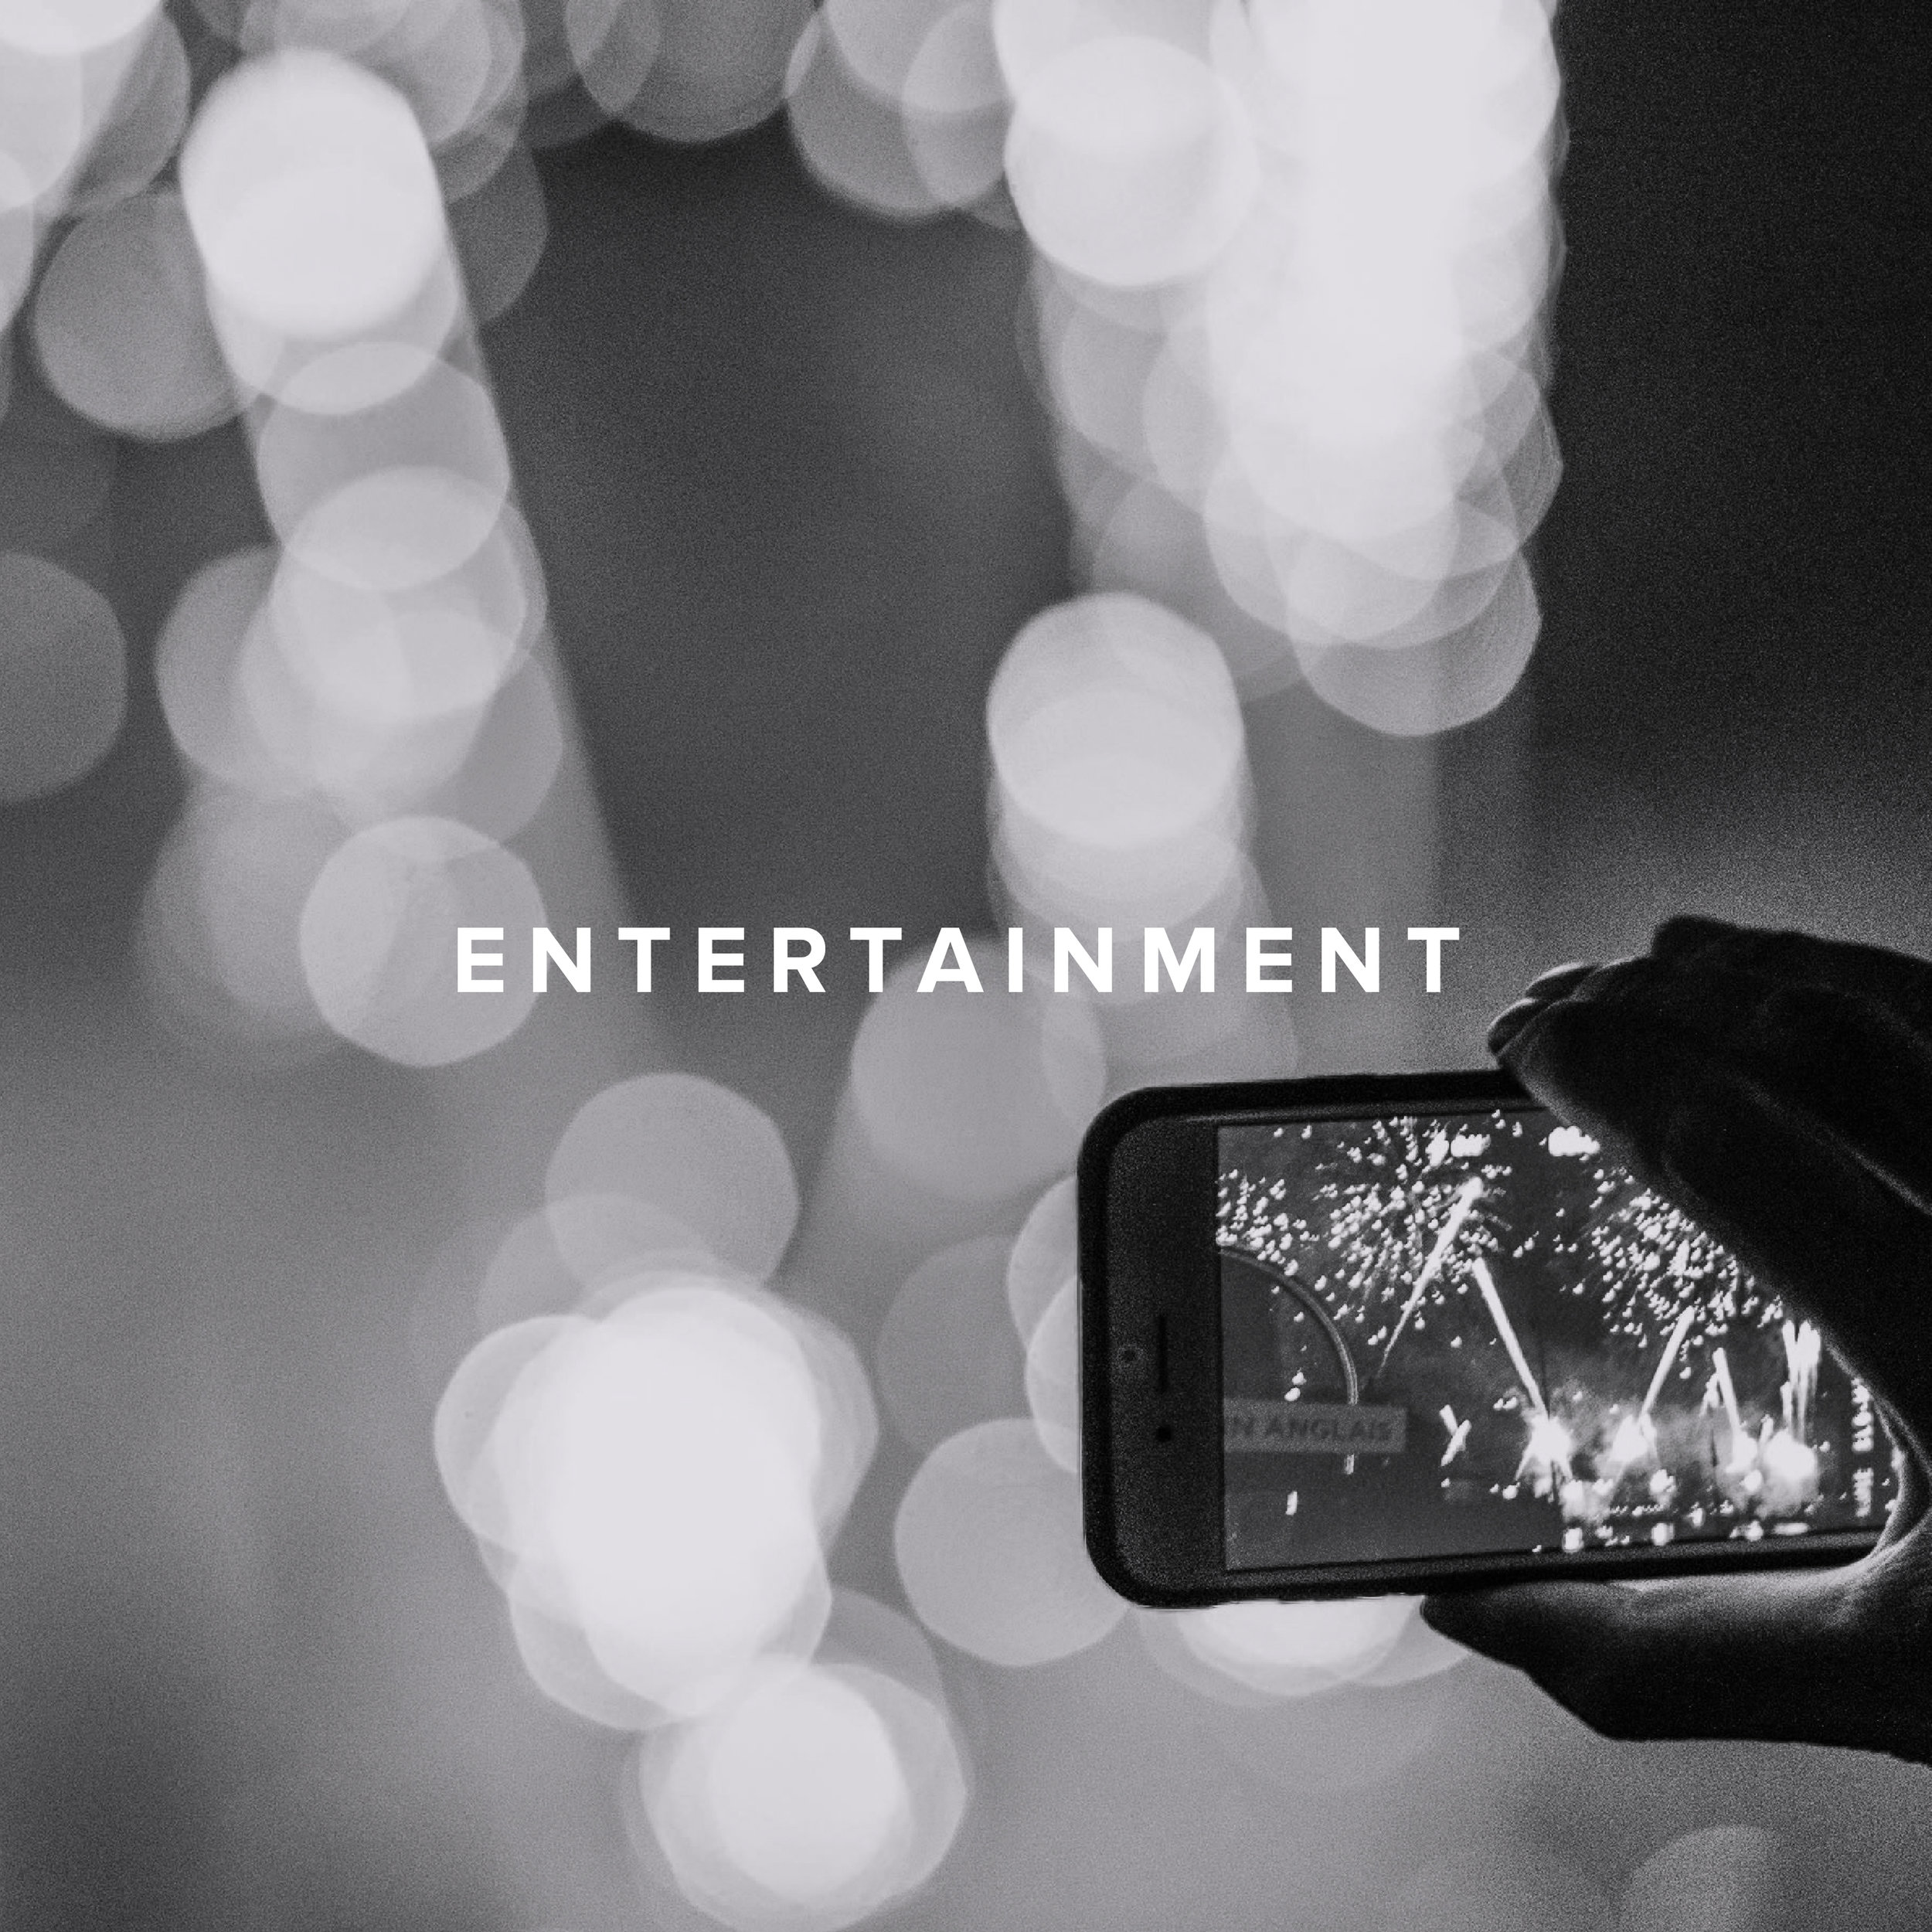 Lights, Camera, Action! We're from LA. Entertainment flows in our DNA.